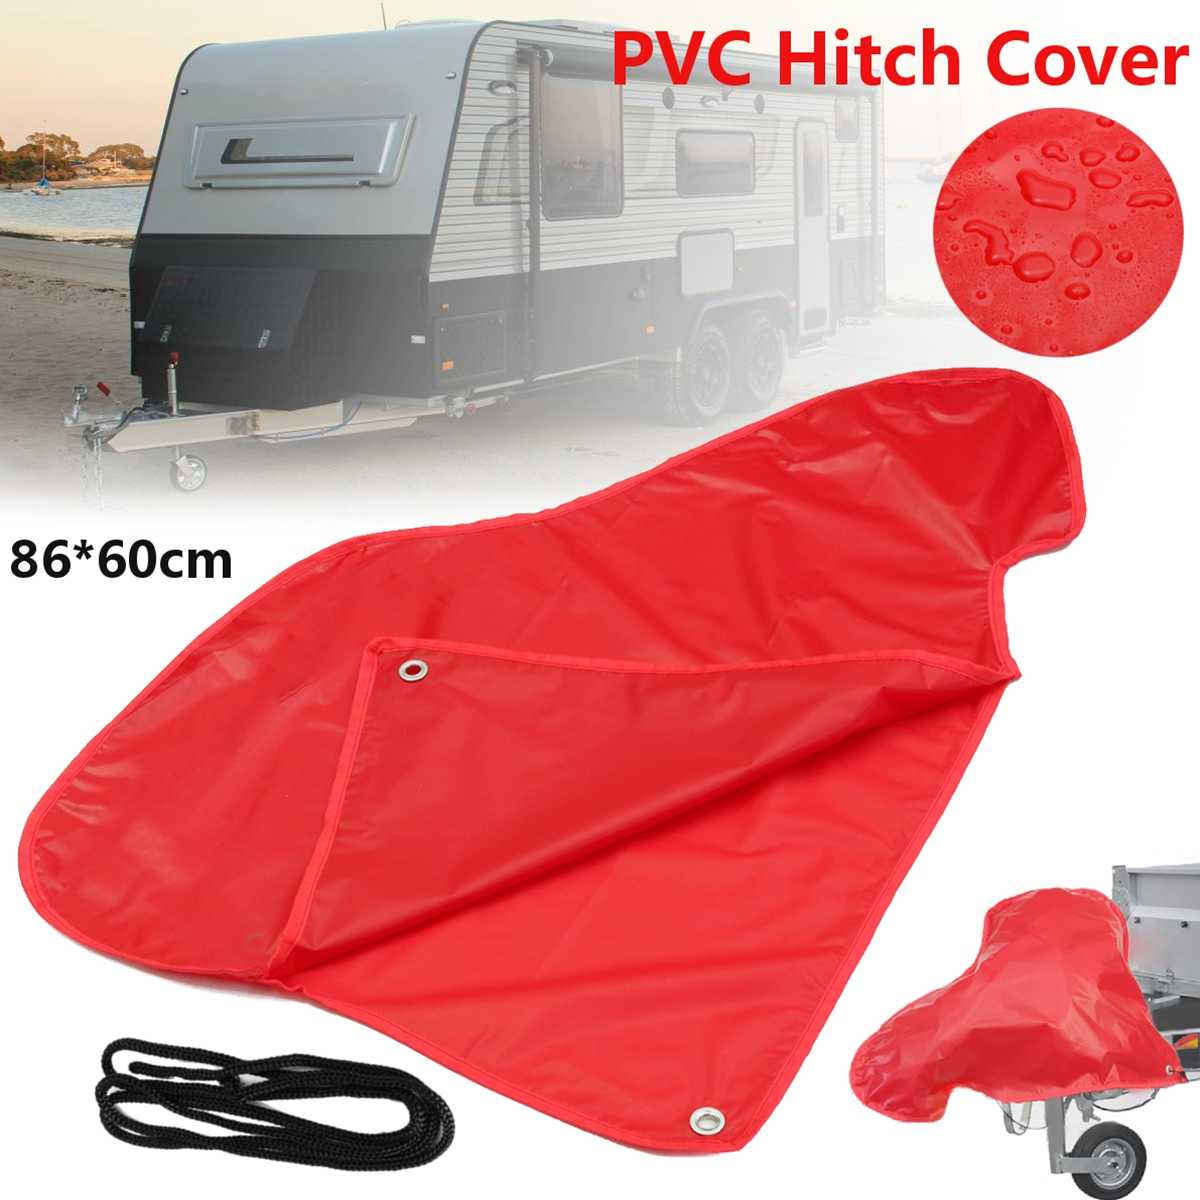 Red PVC Car Waterproof Trailer Towing Hook Connector Hitch Cover  For Caravan Tailer Hitch Coupling Lock Dust Protect